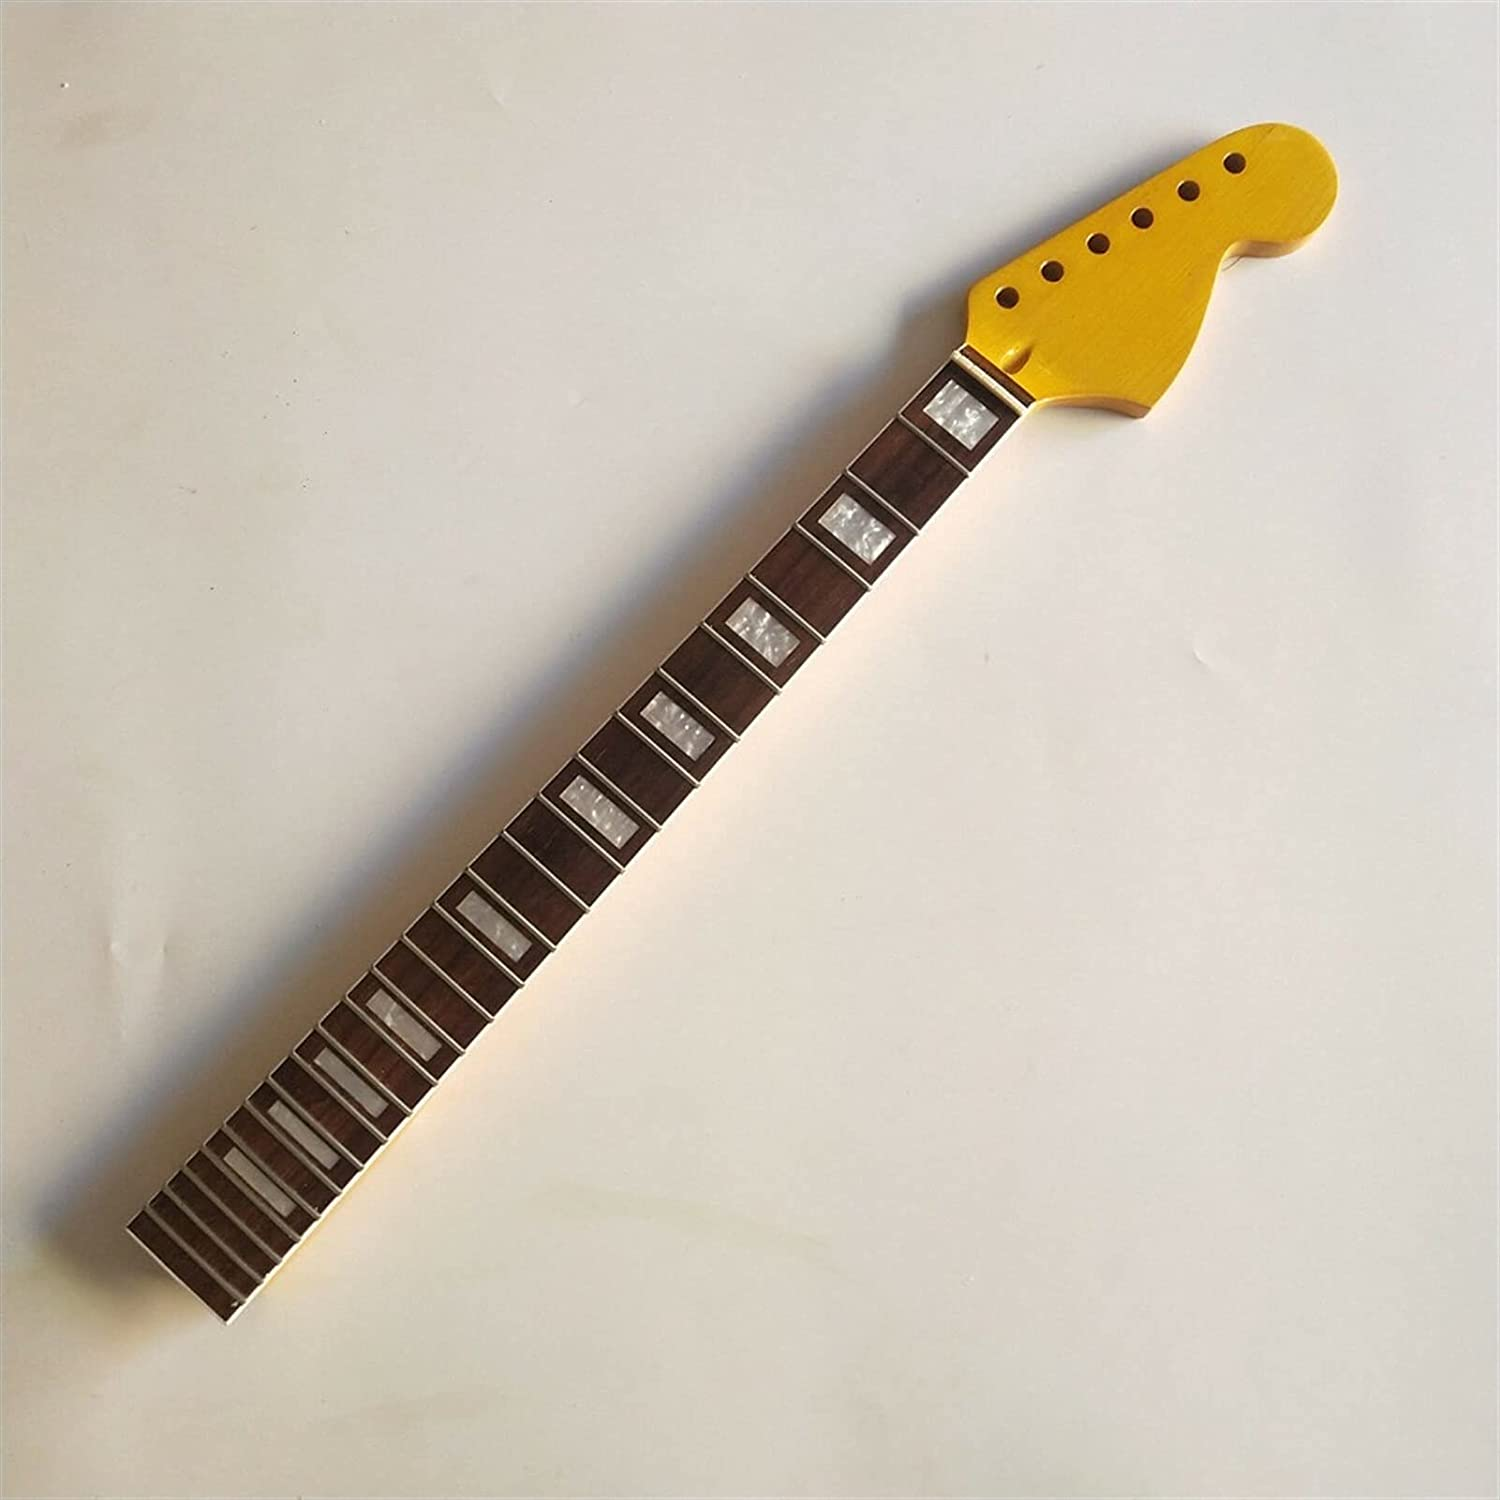 Big Free shipping anywhere in the nation Very popular Head Maple Guitar Neck 24 Rosewood Replacemen Fret Fretboard